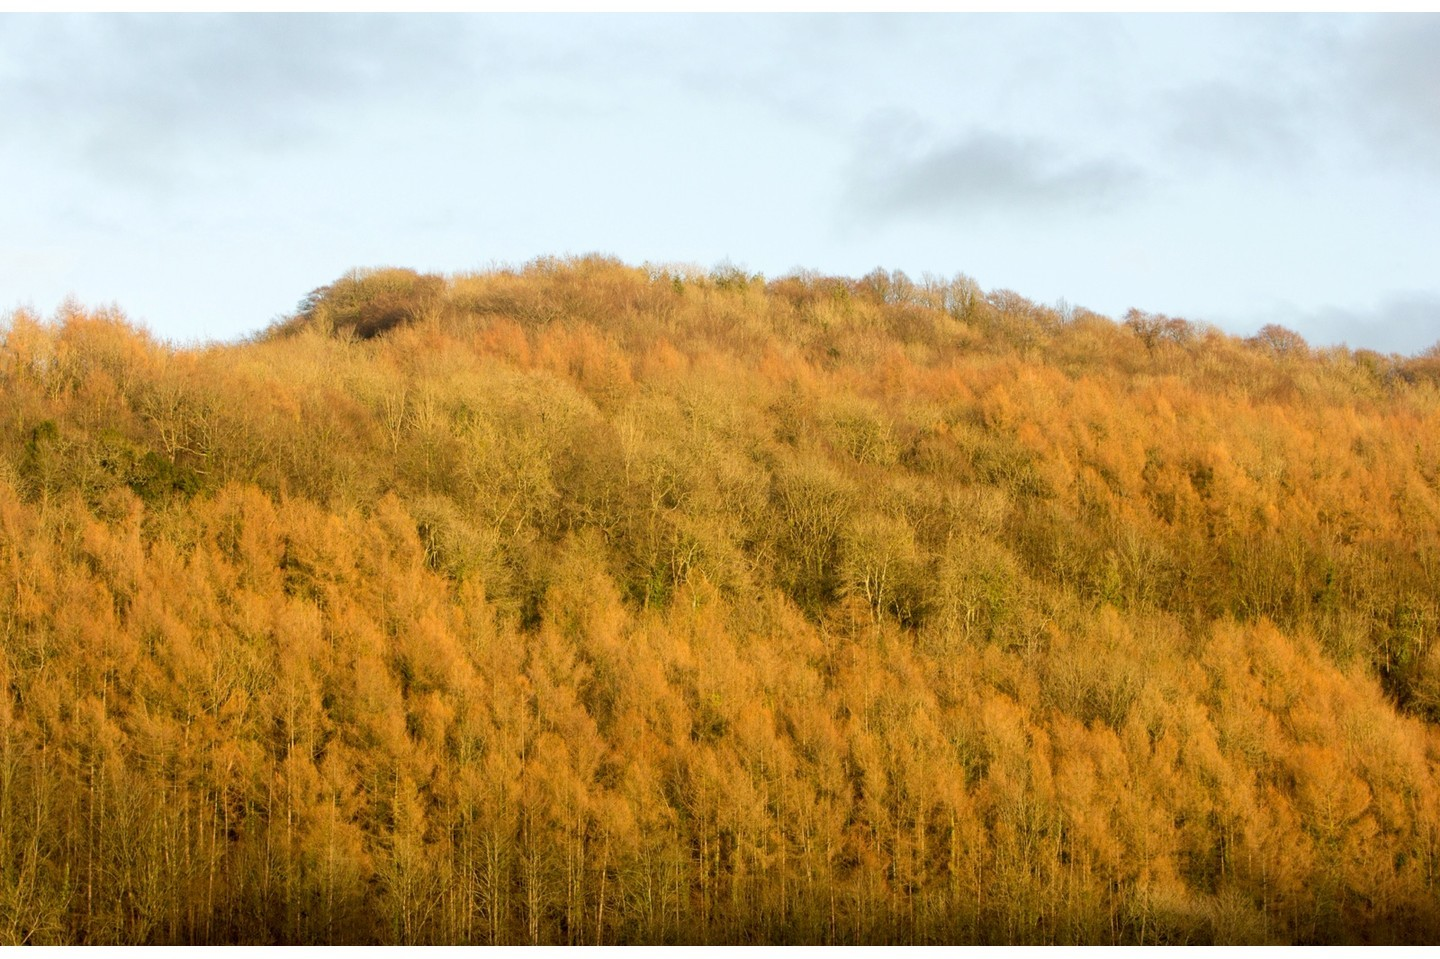 Larch trees in Wye Valley